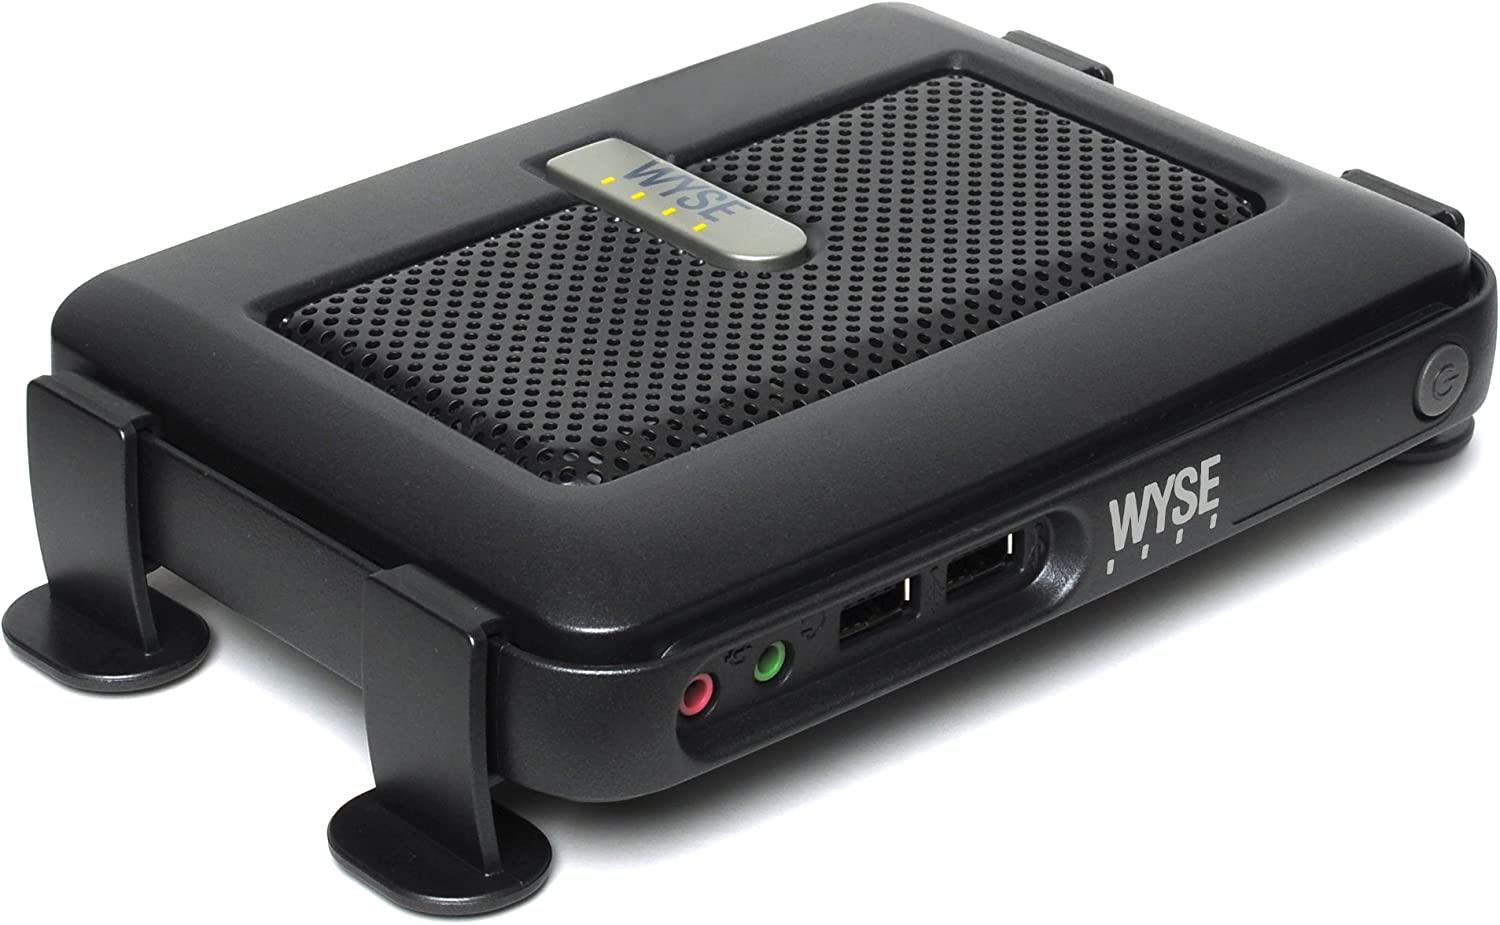 Dell Wyse C10LE Thin Client 902174-01L 0.1-Inch Cloud Computer